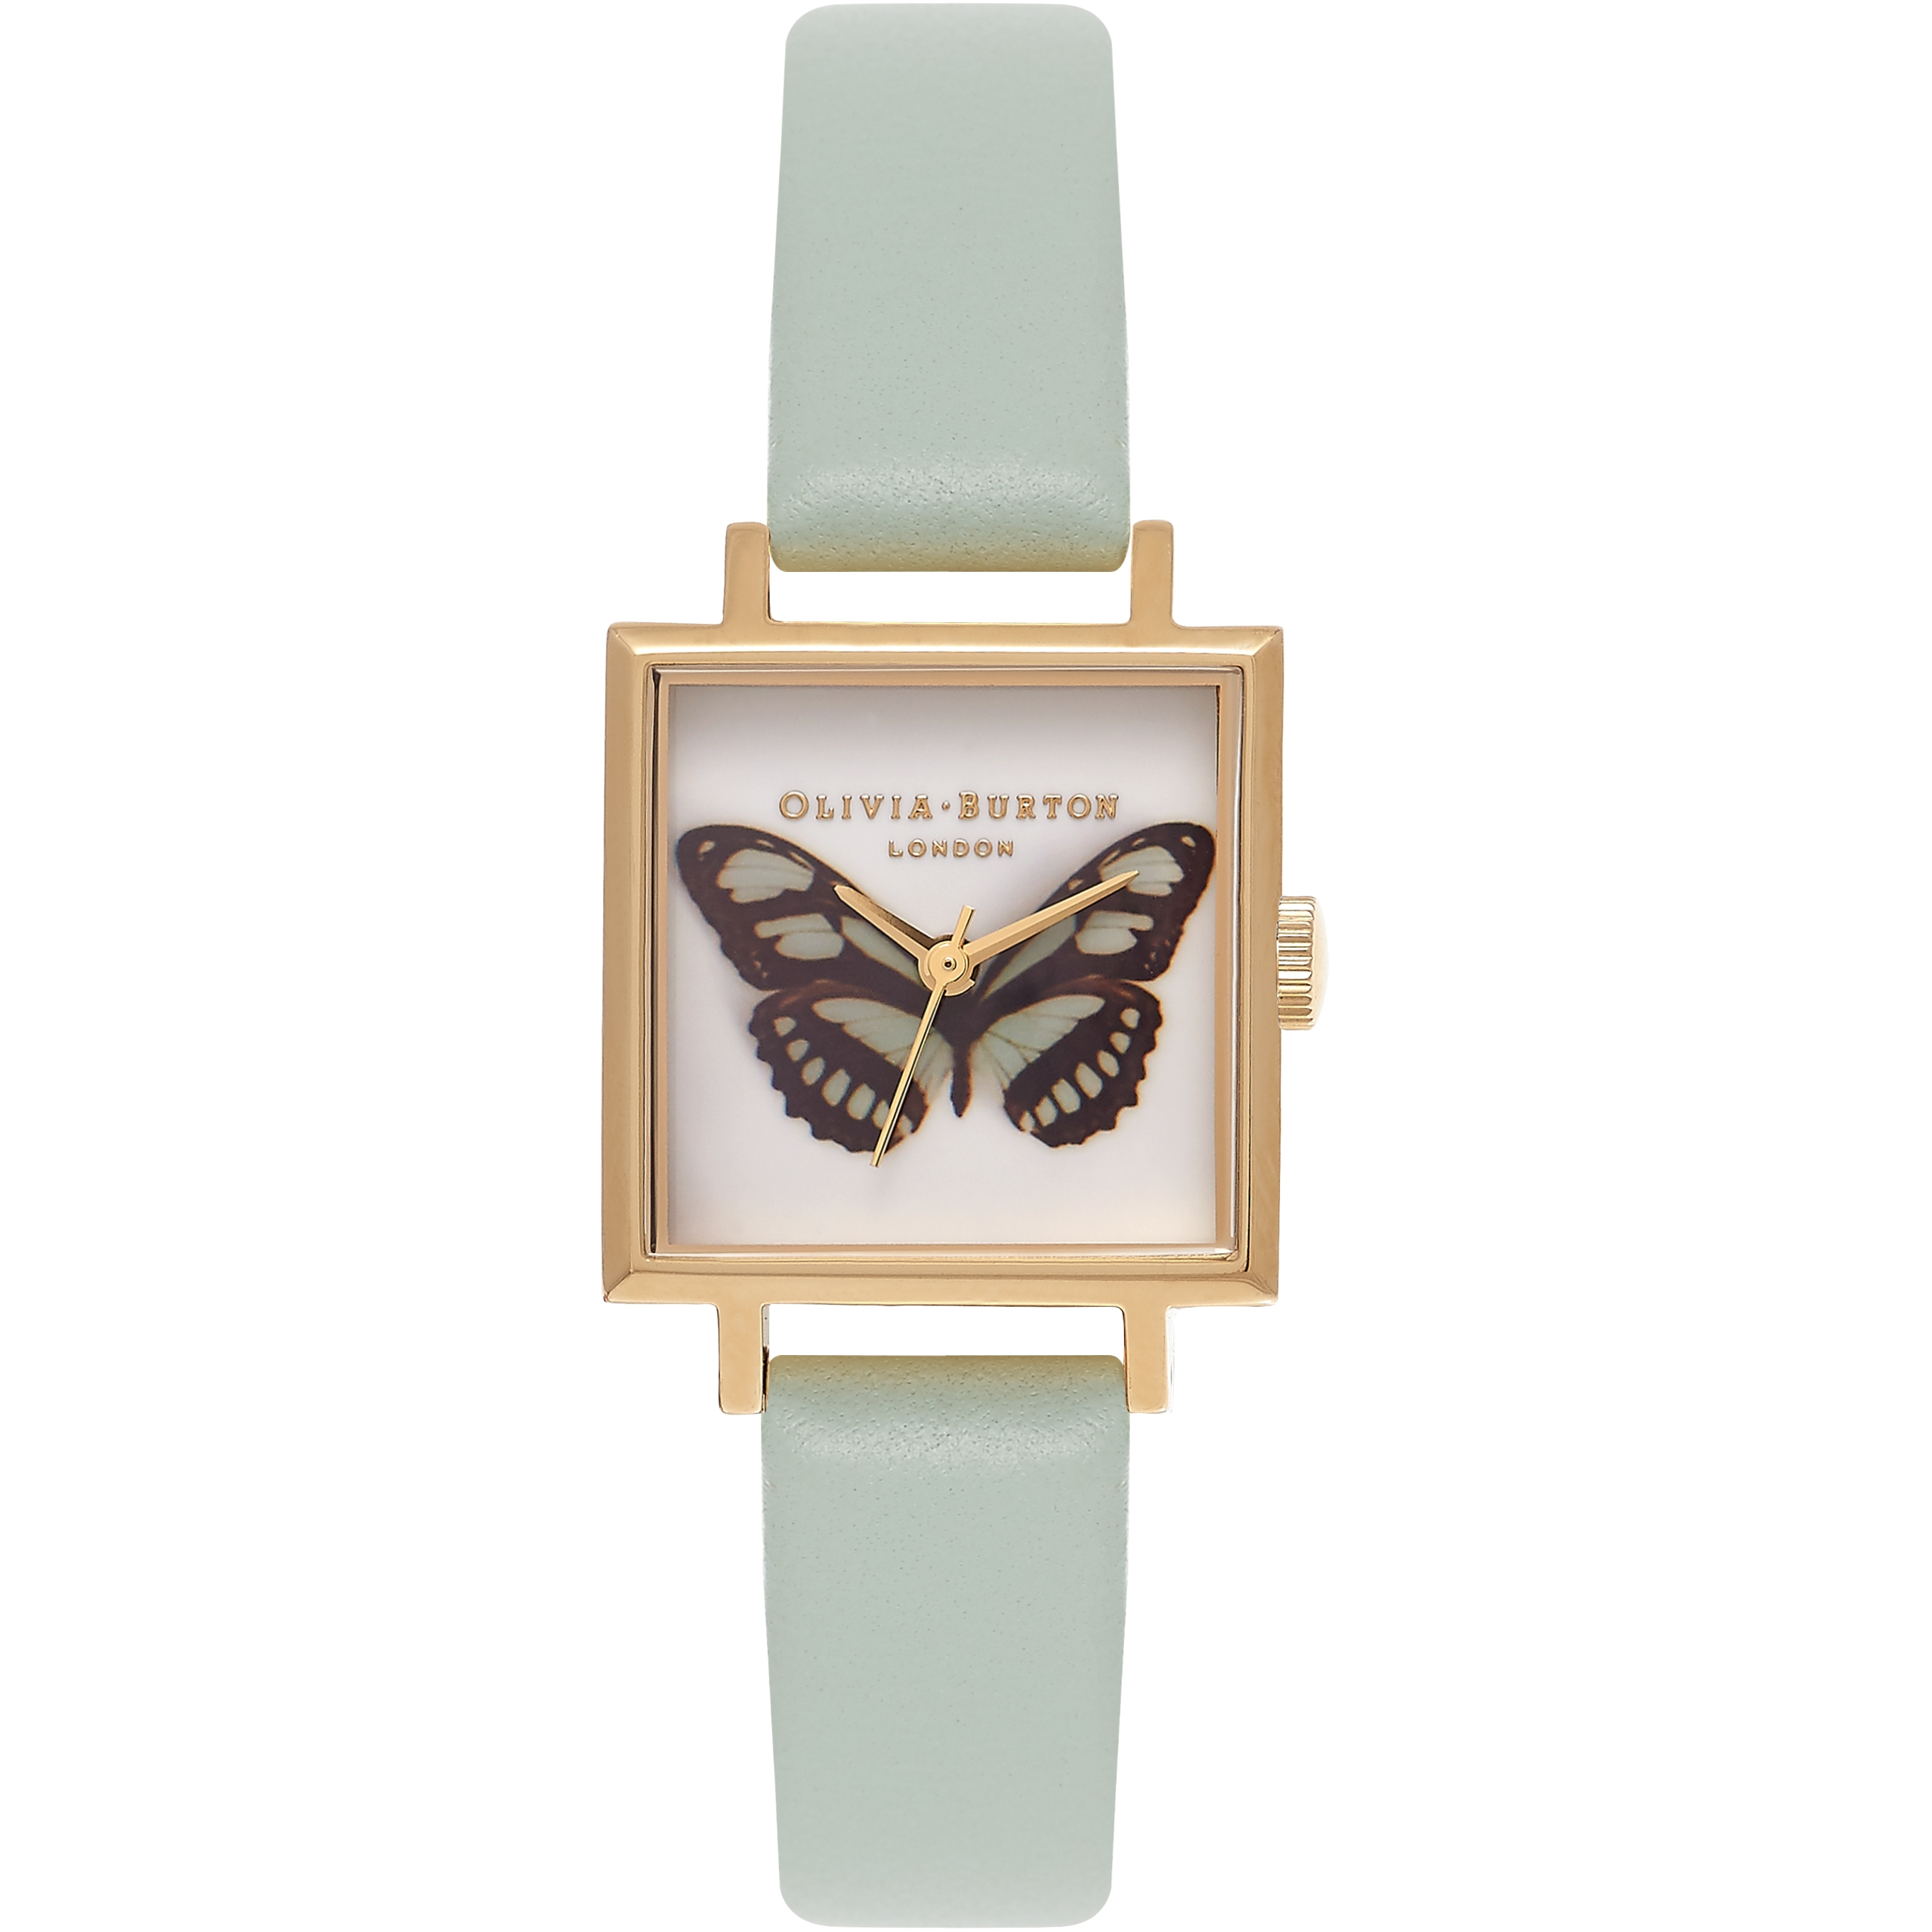 joiers barcelona jewelry barcelonaluxury list s bagu butterfly masriera botiga luxury watches bagues